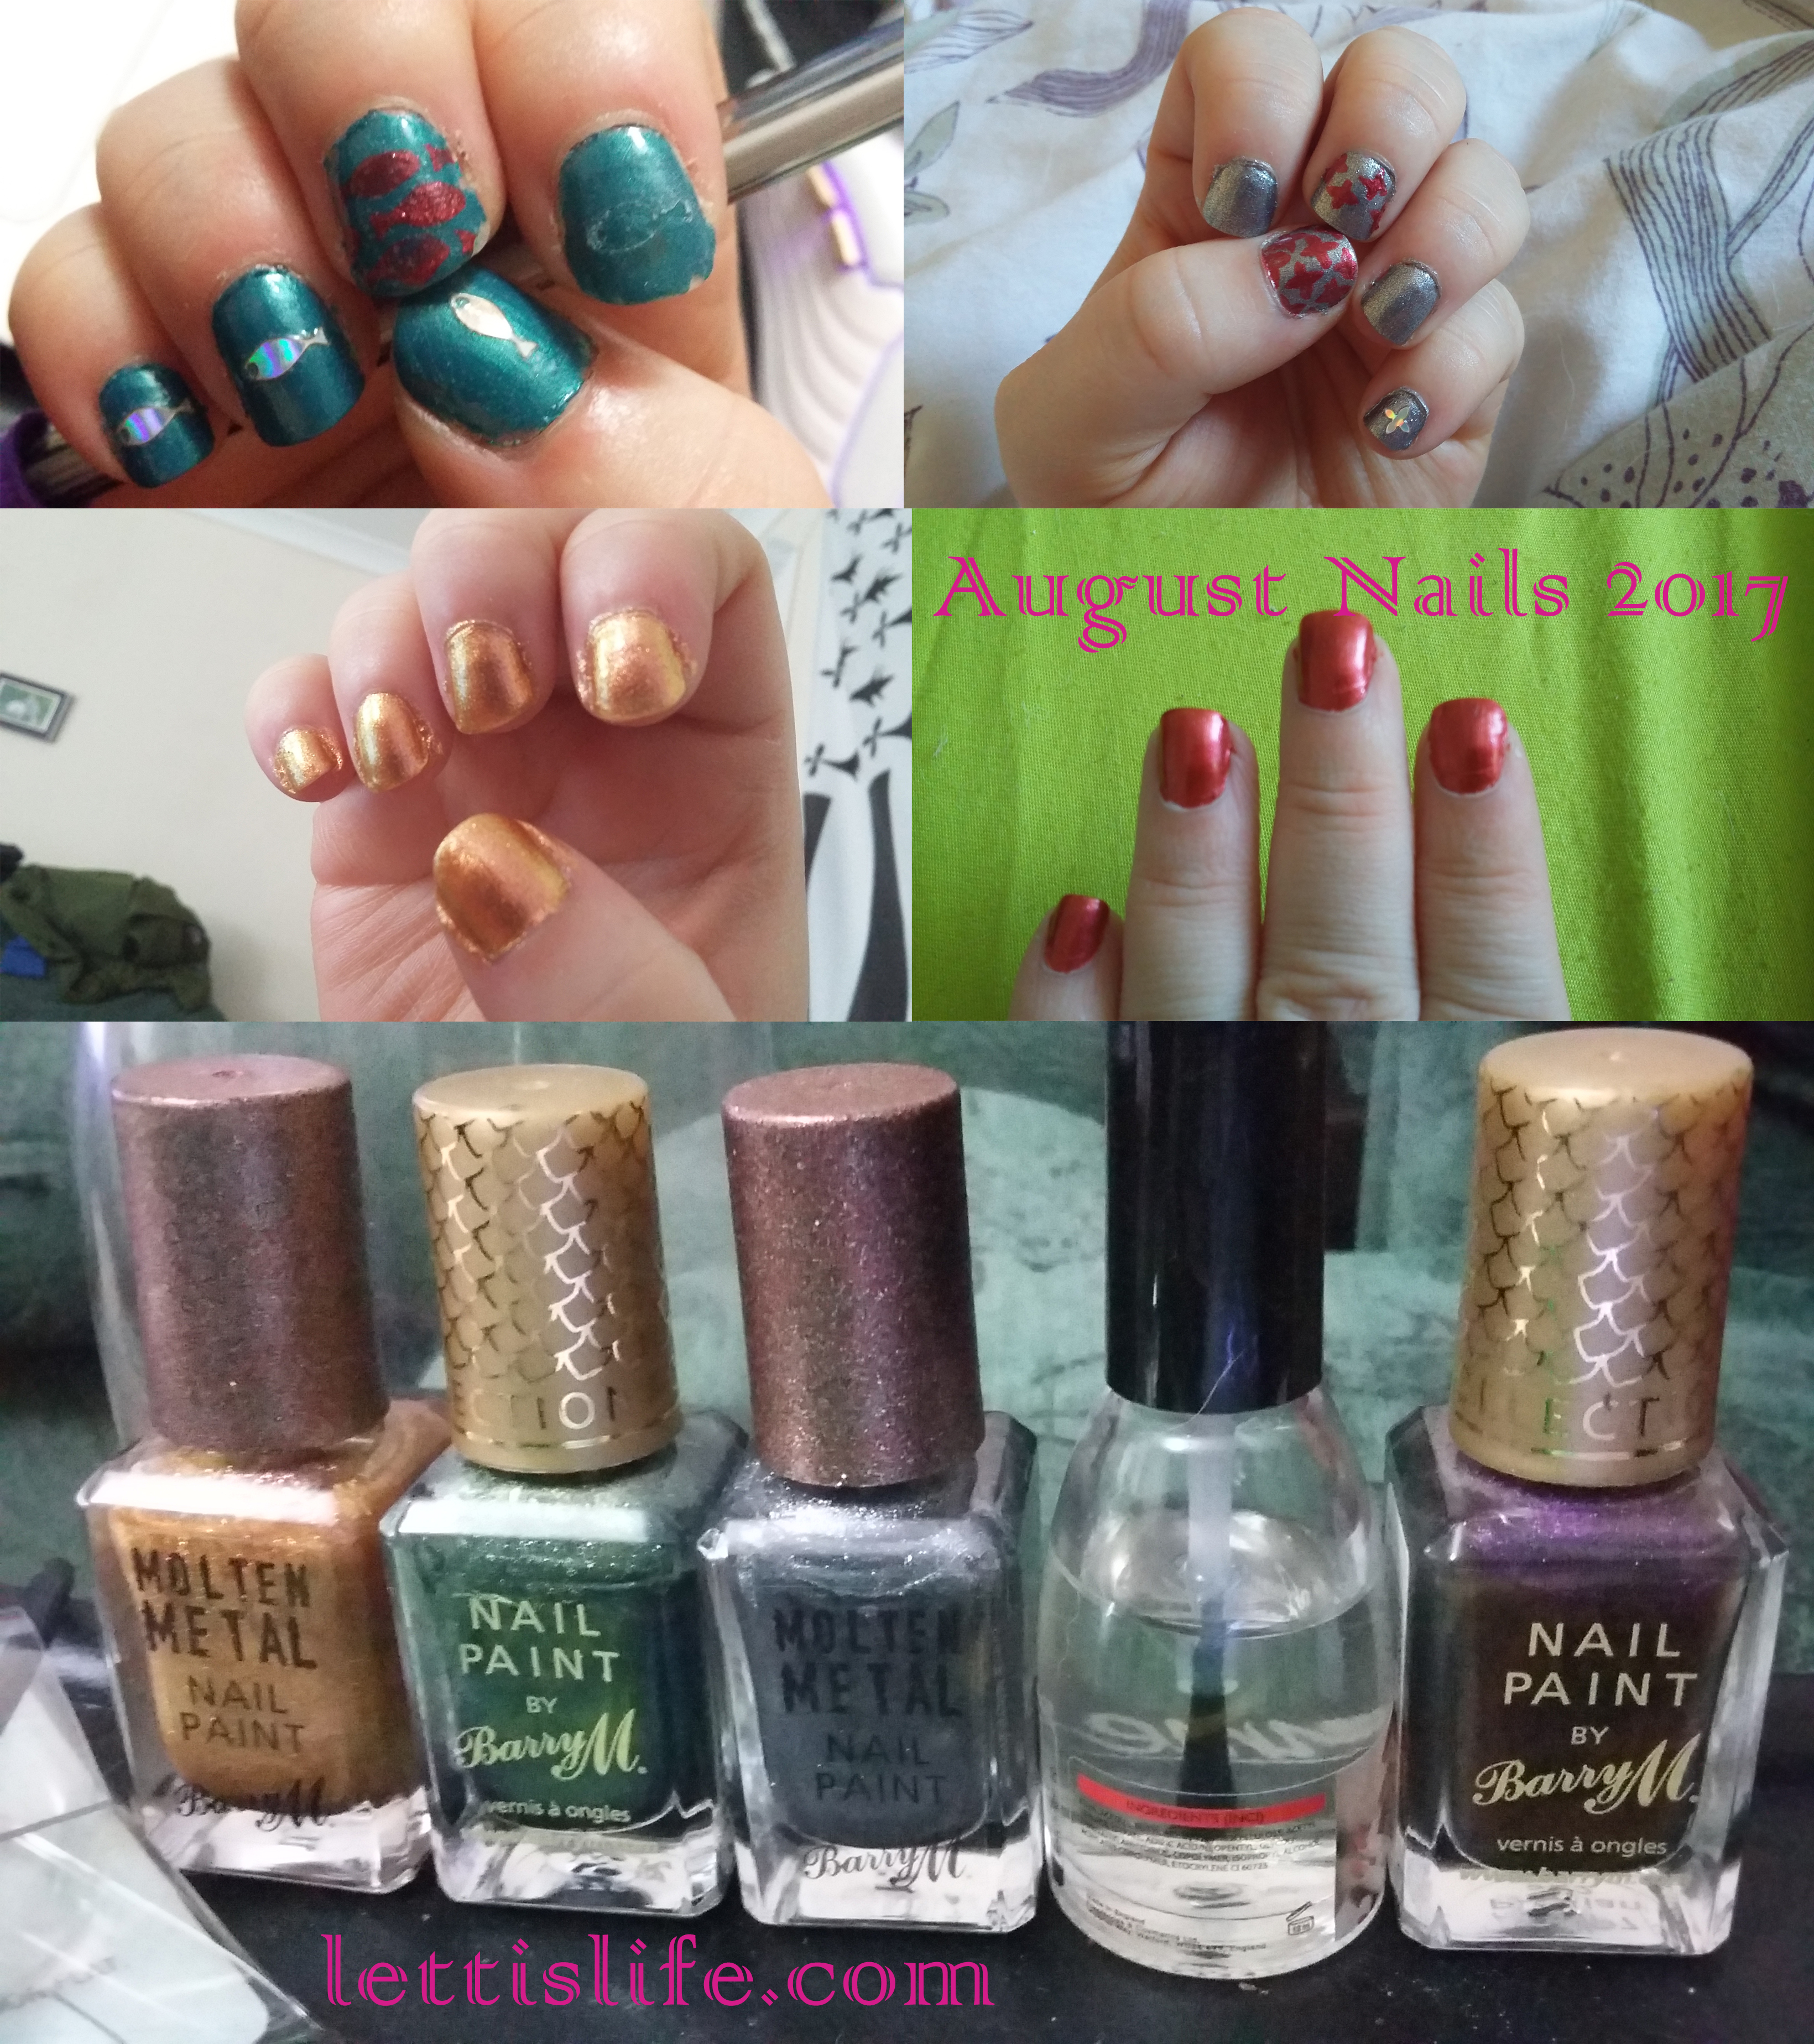 Nail art varnish August 2017.jpg